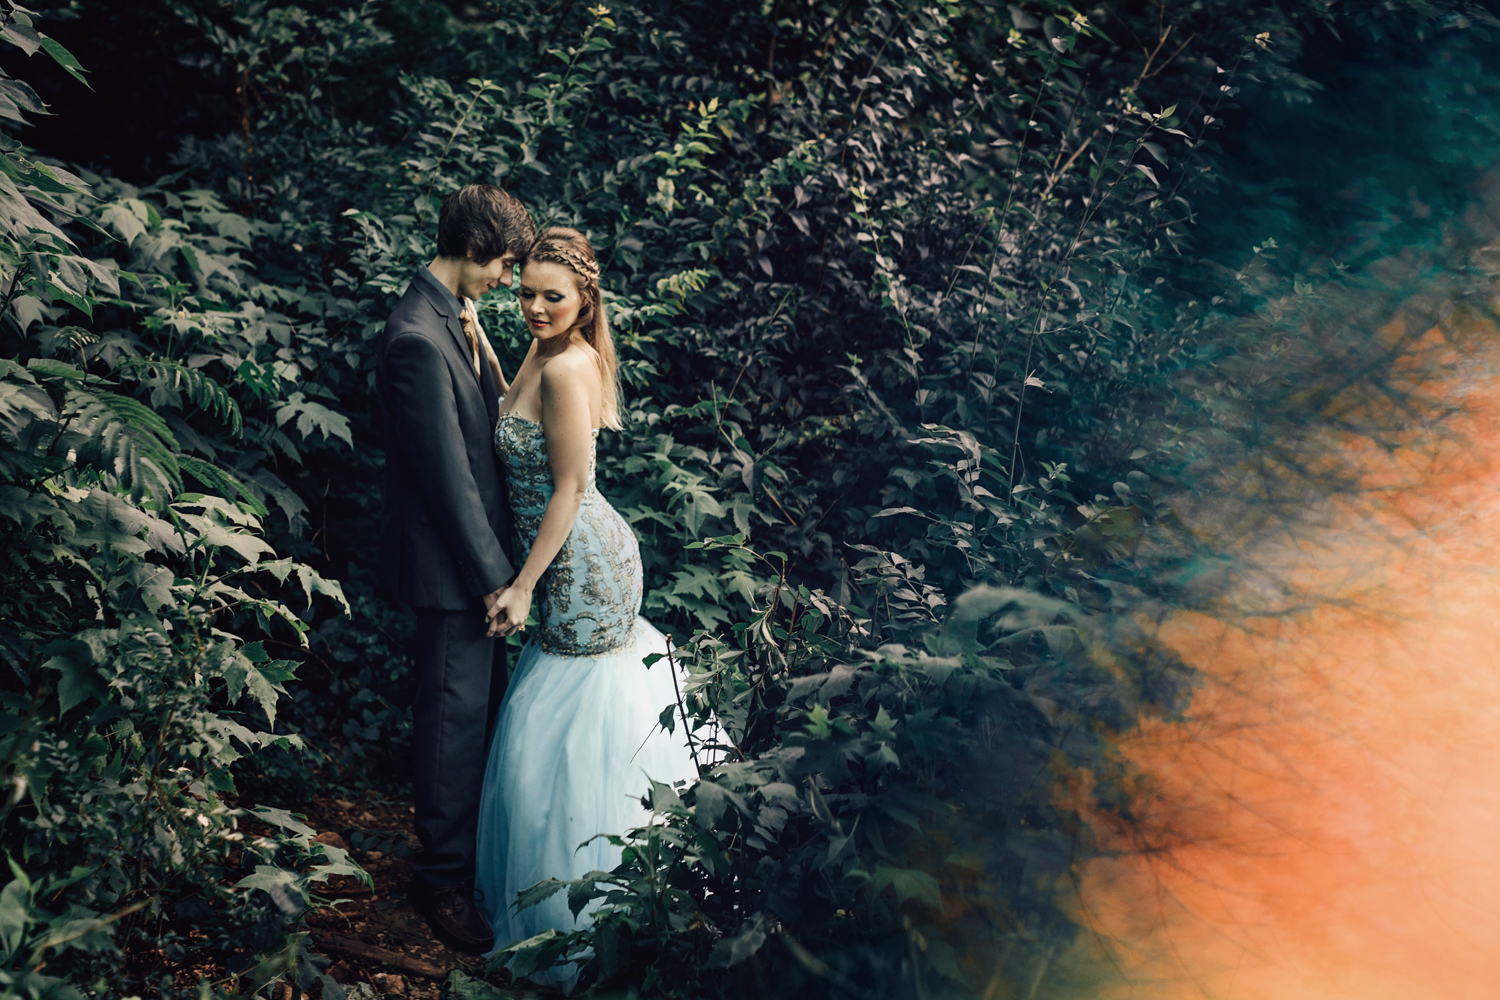 Alyssa + Dylan / Knoxville, Tennessee Mermaid Inspired Anniversary ...